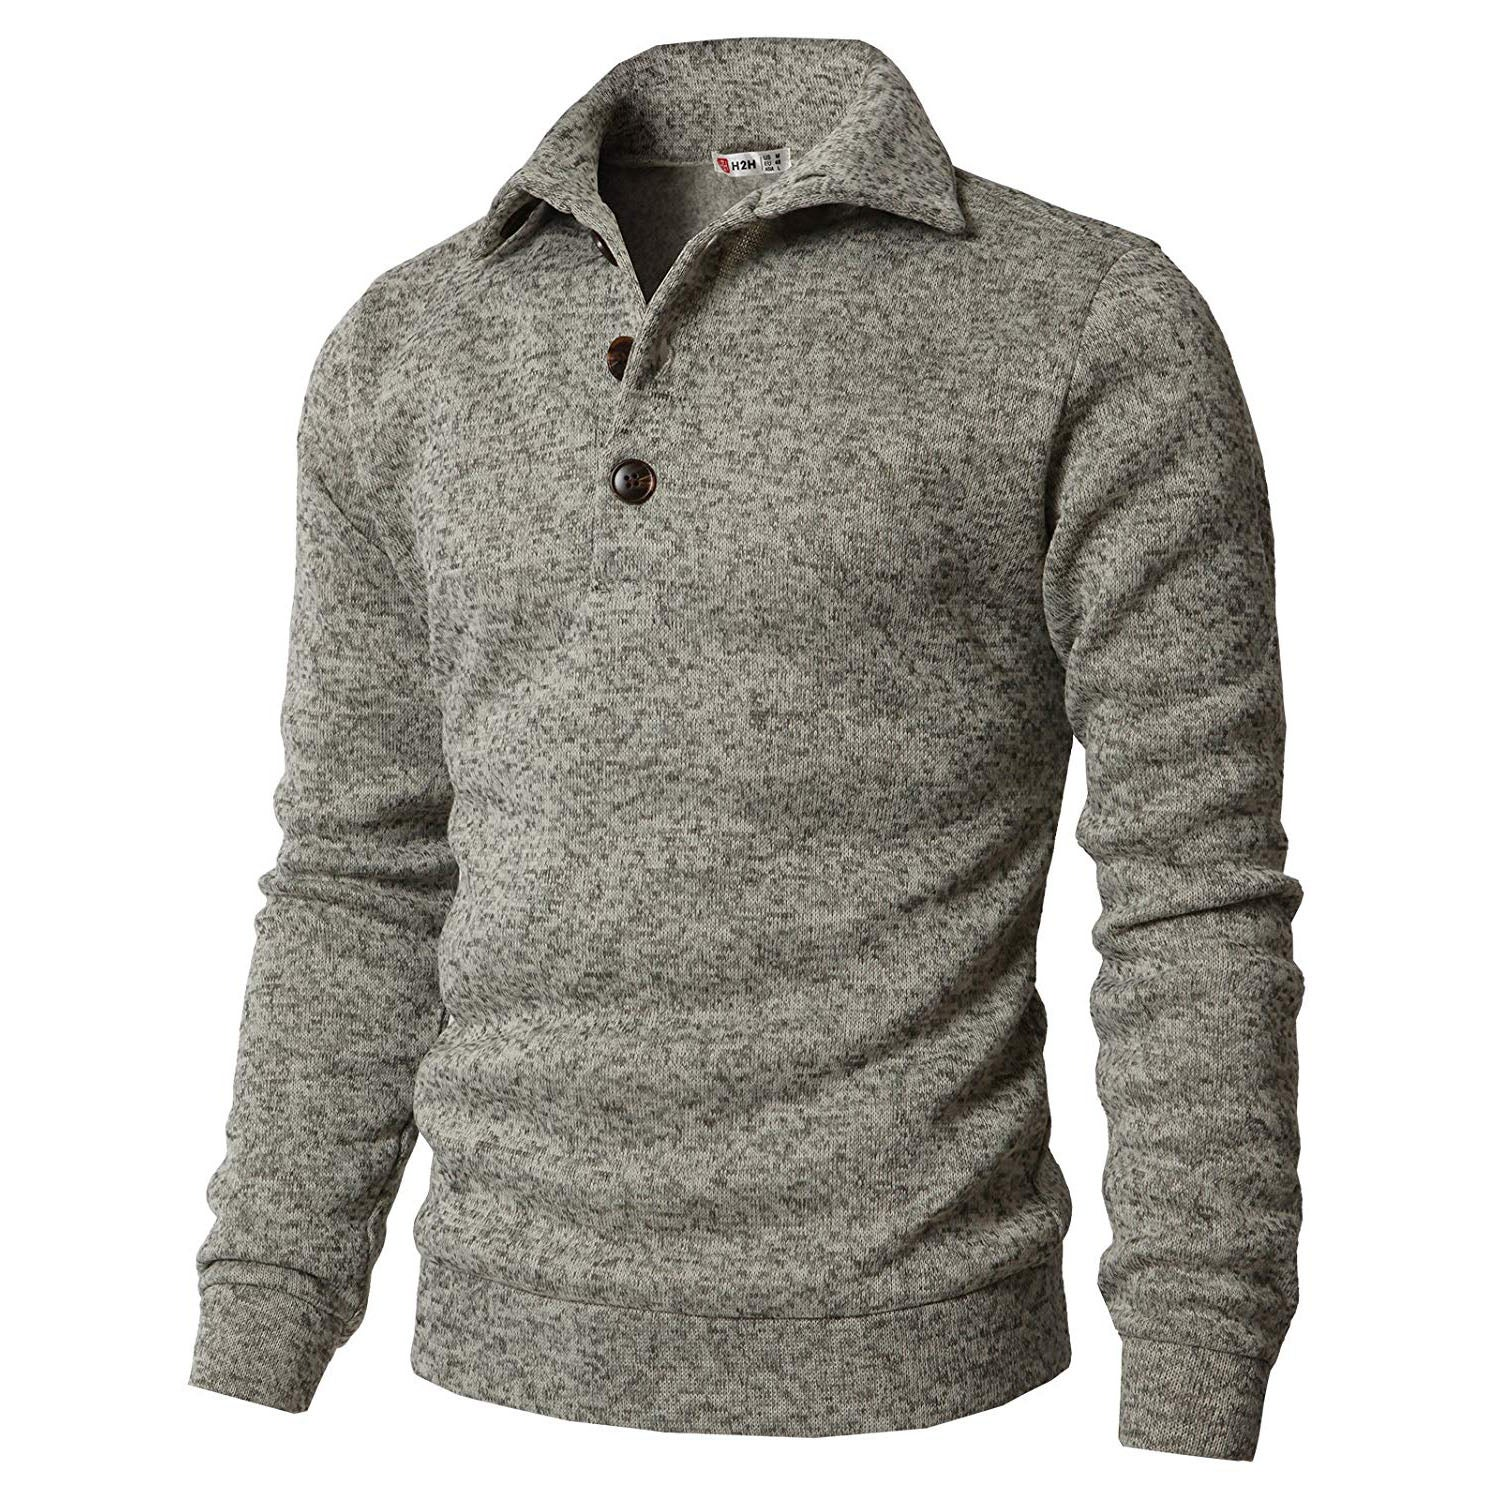 Warm sweater with a wide collar